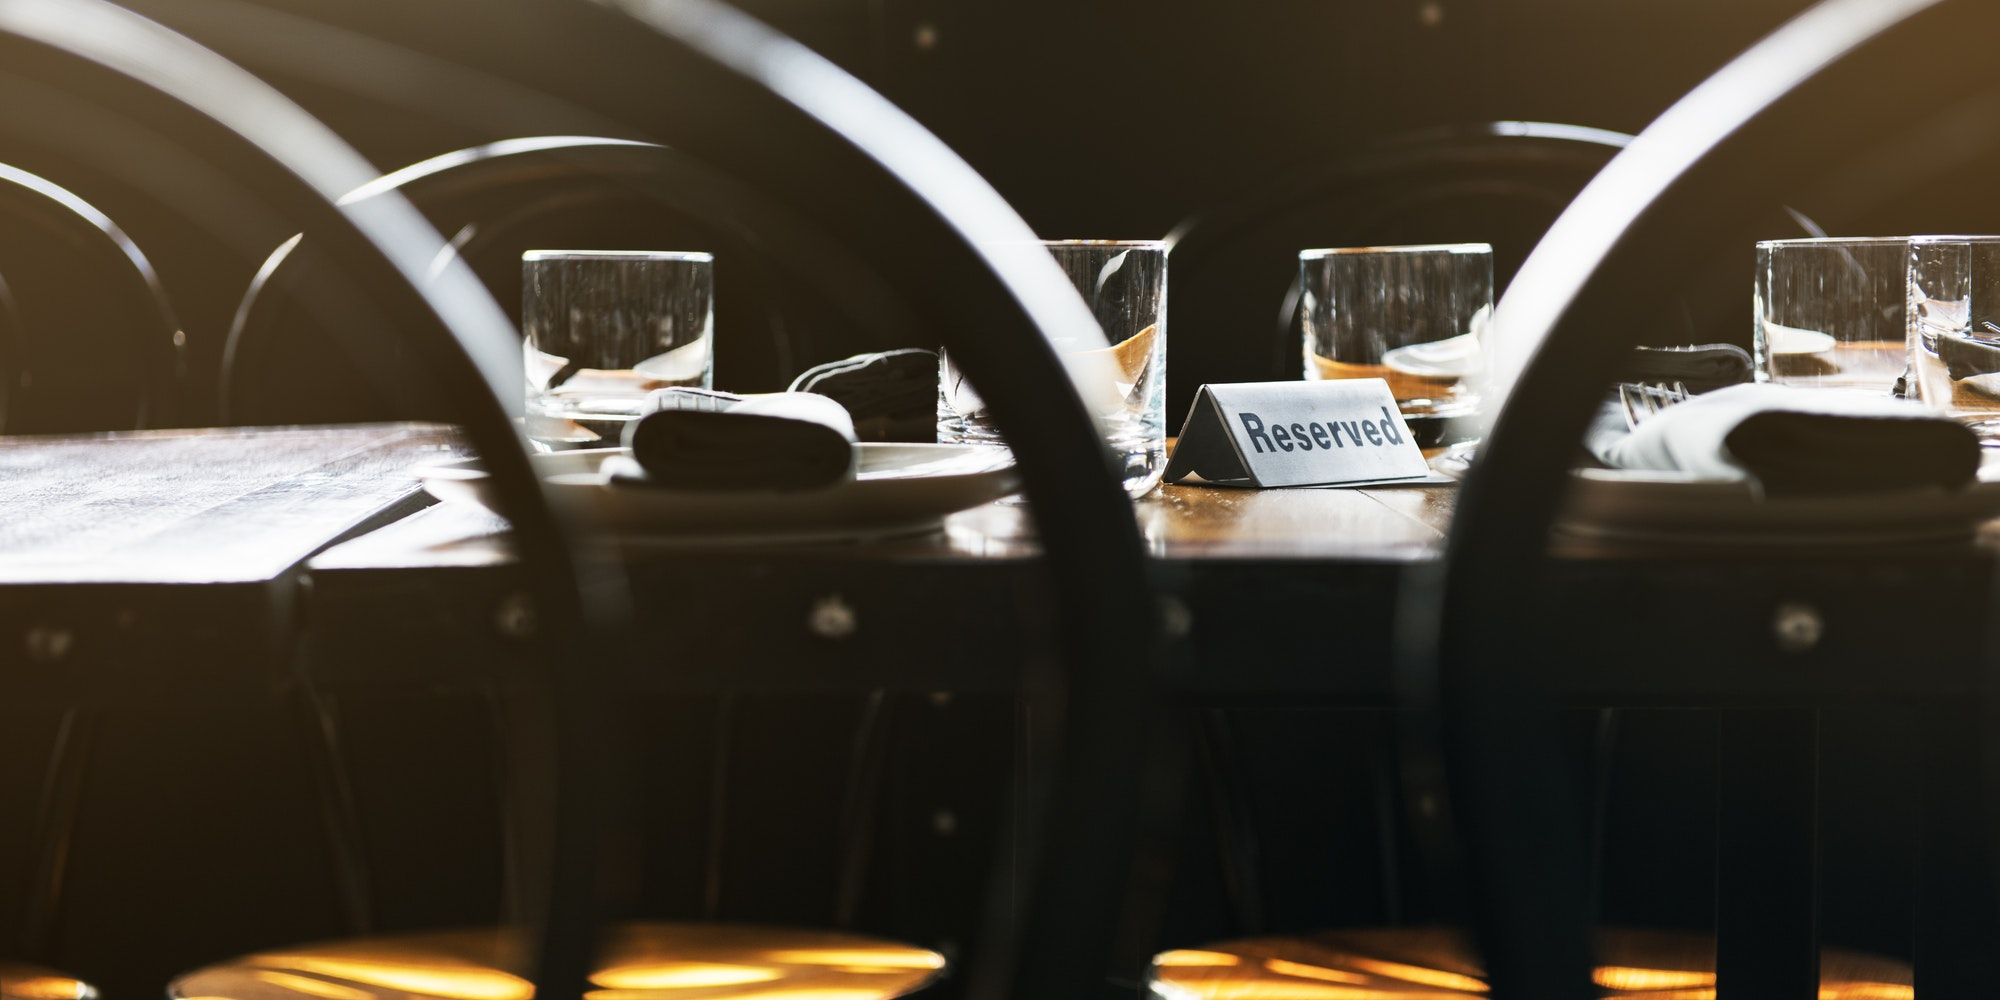 Banquet Reserved Table Celebration Concept